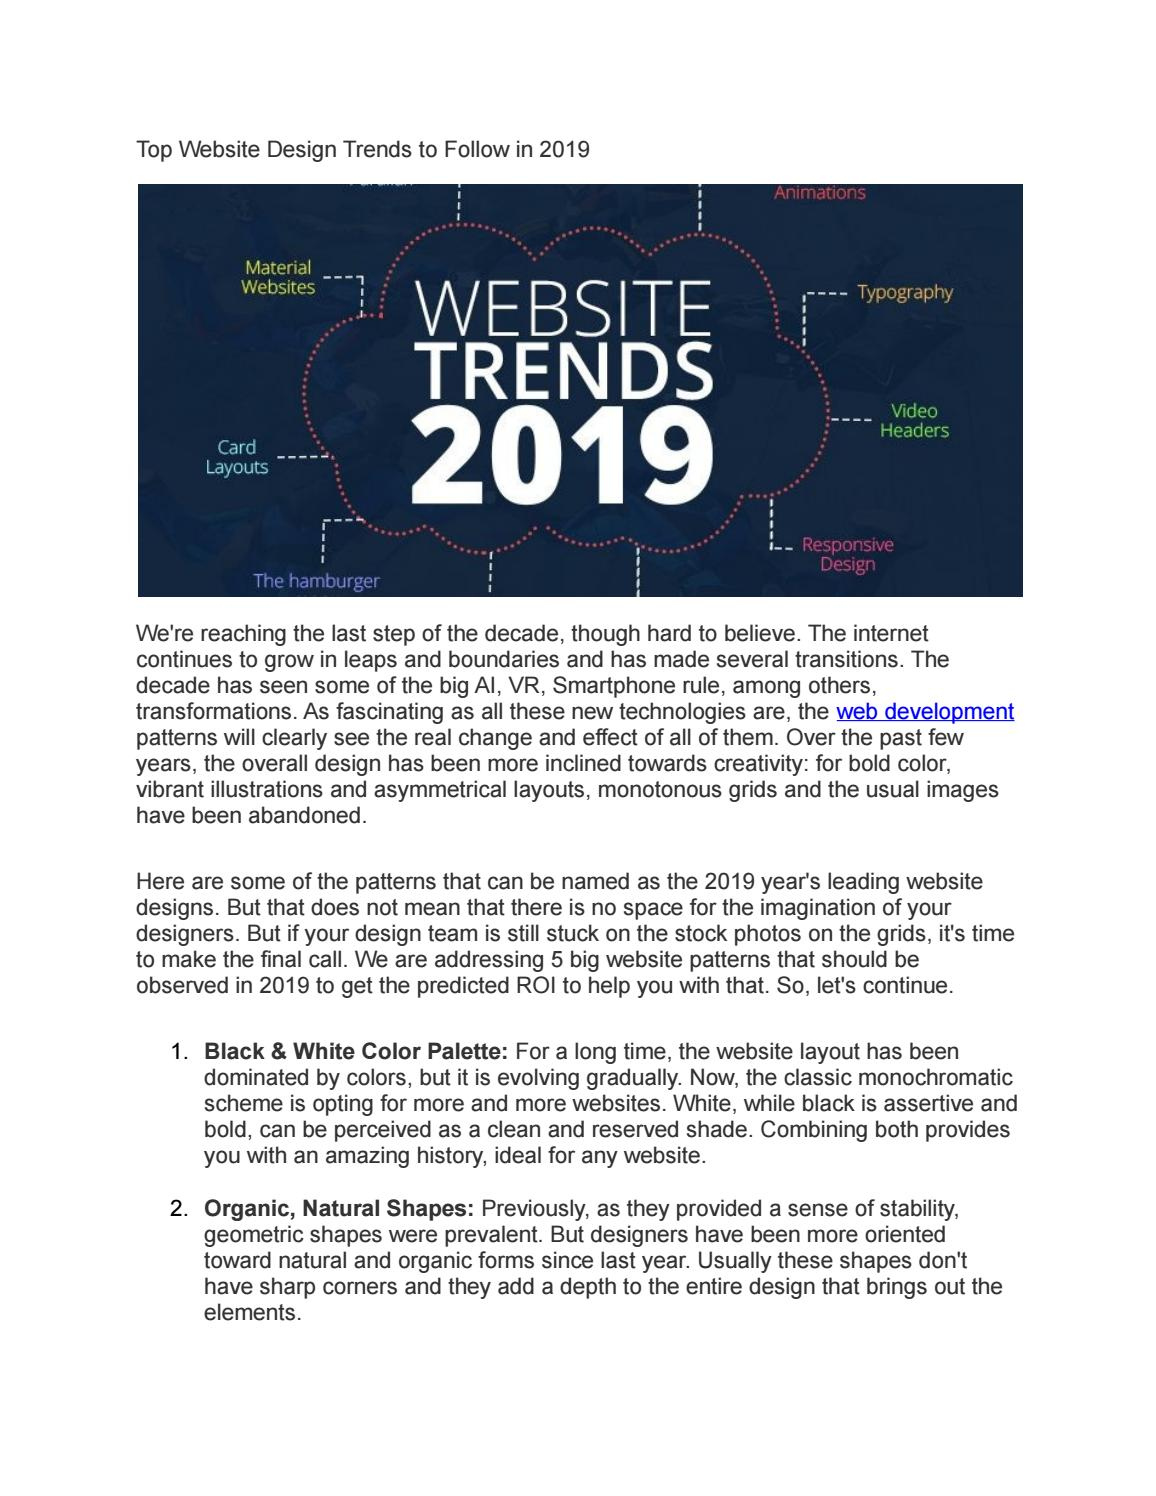 Top Website Design Trends To Follow In 2019 By Studioubique0 Issuu